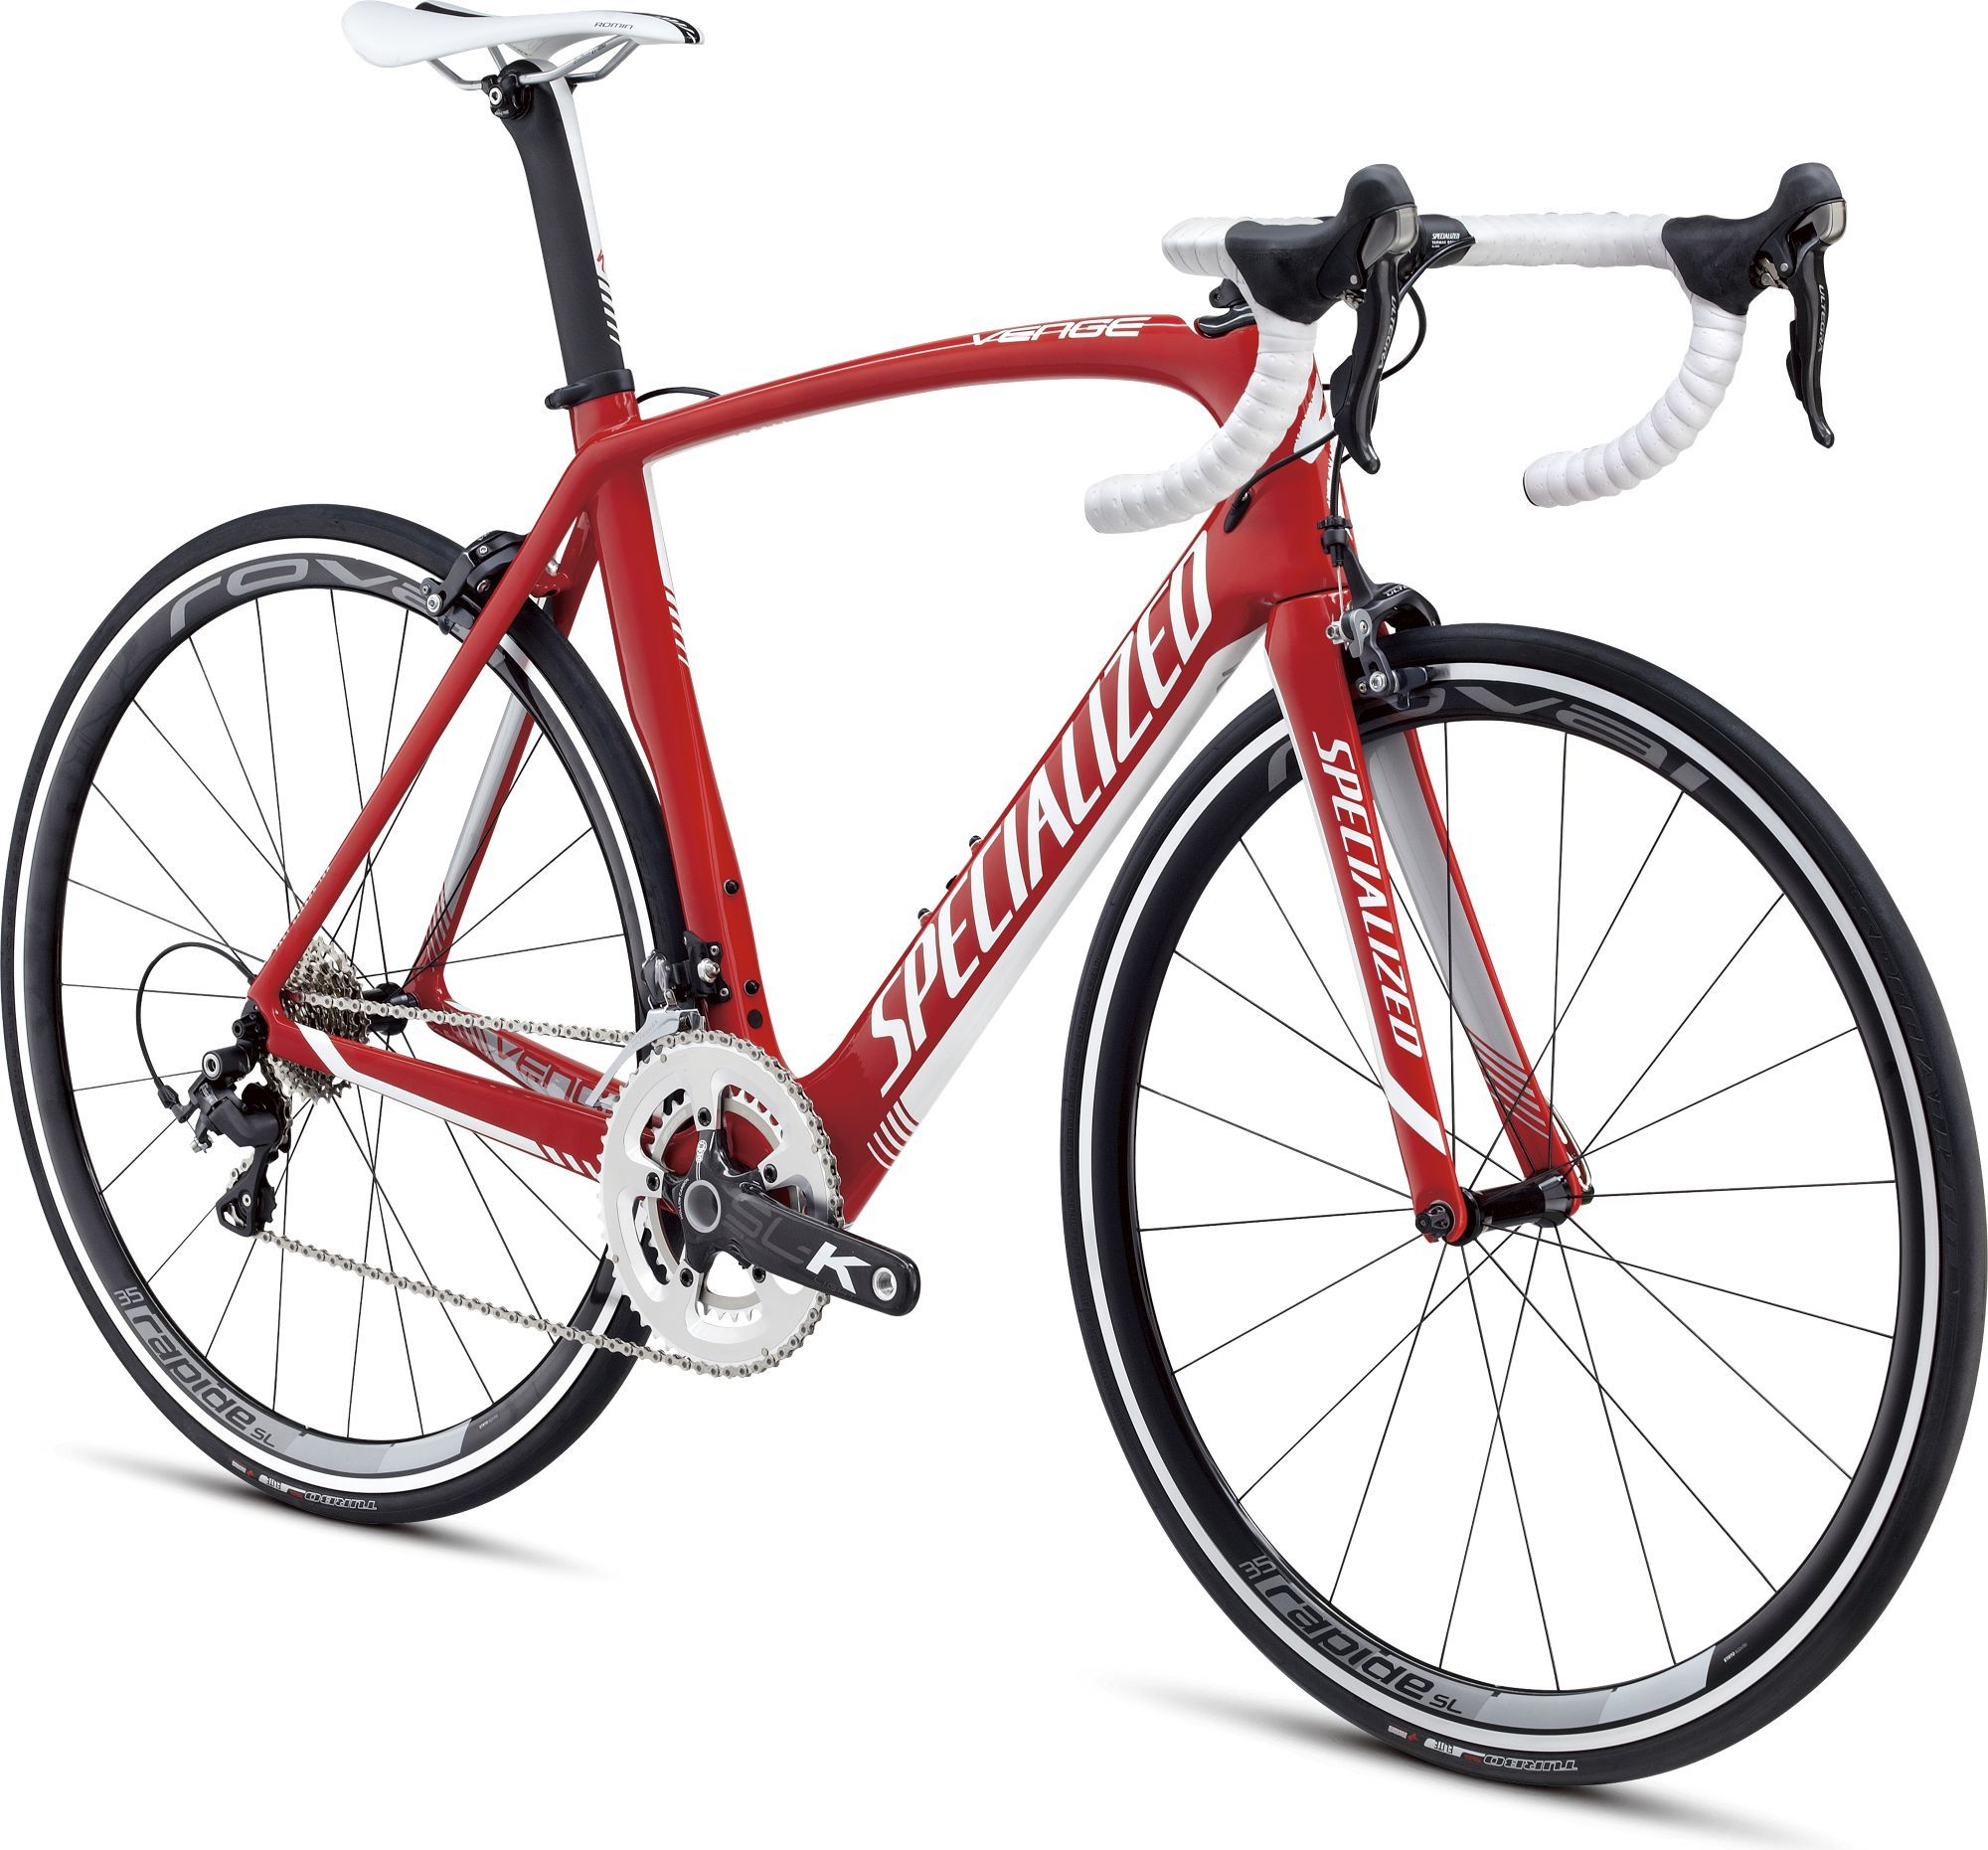 2014 Trek Road Bikes Released.html | Autos Weblog